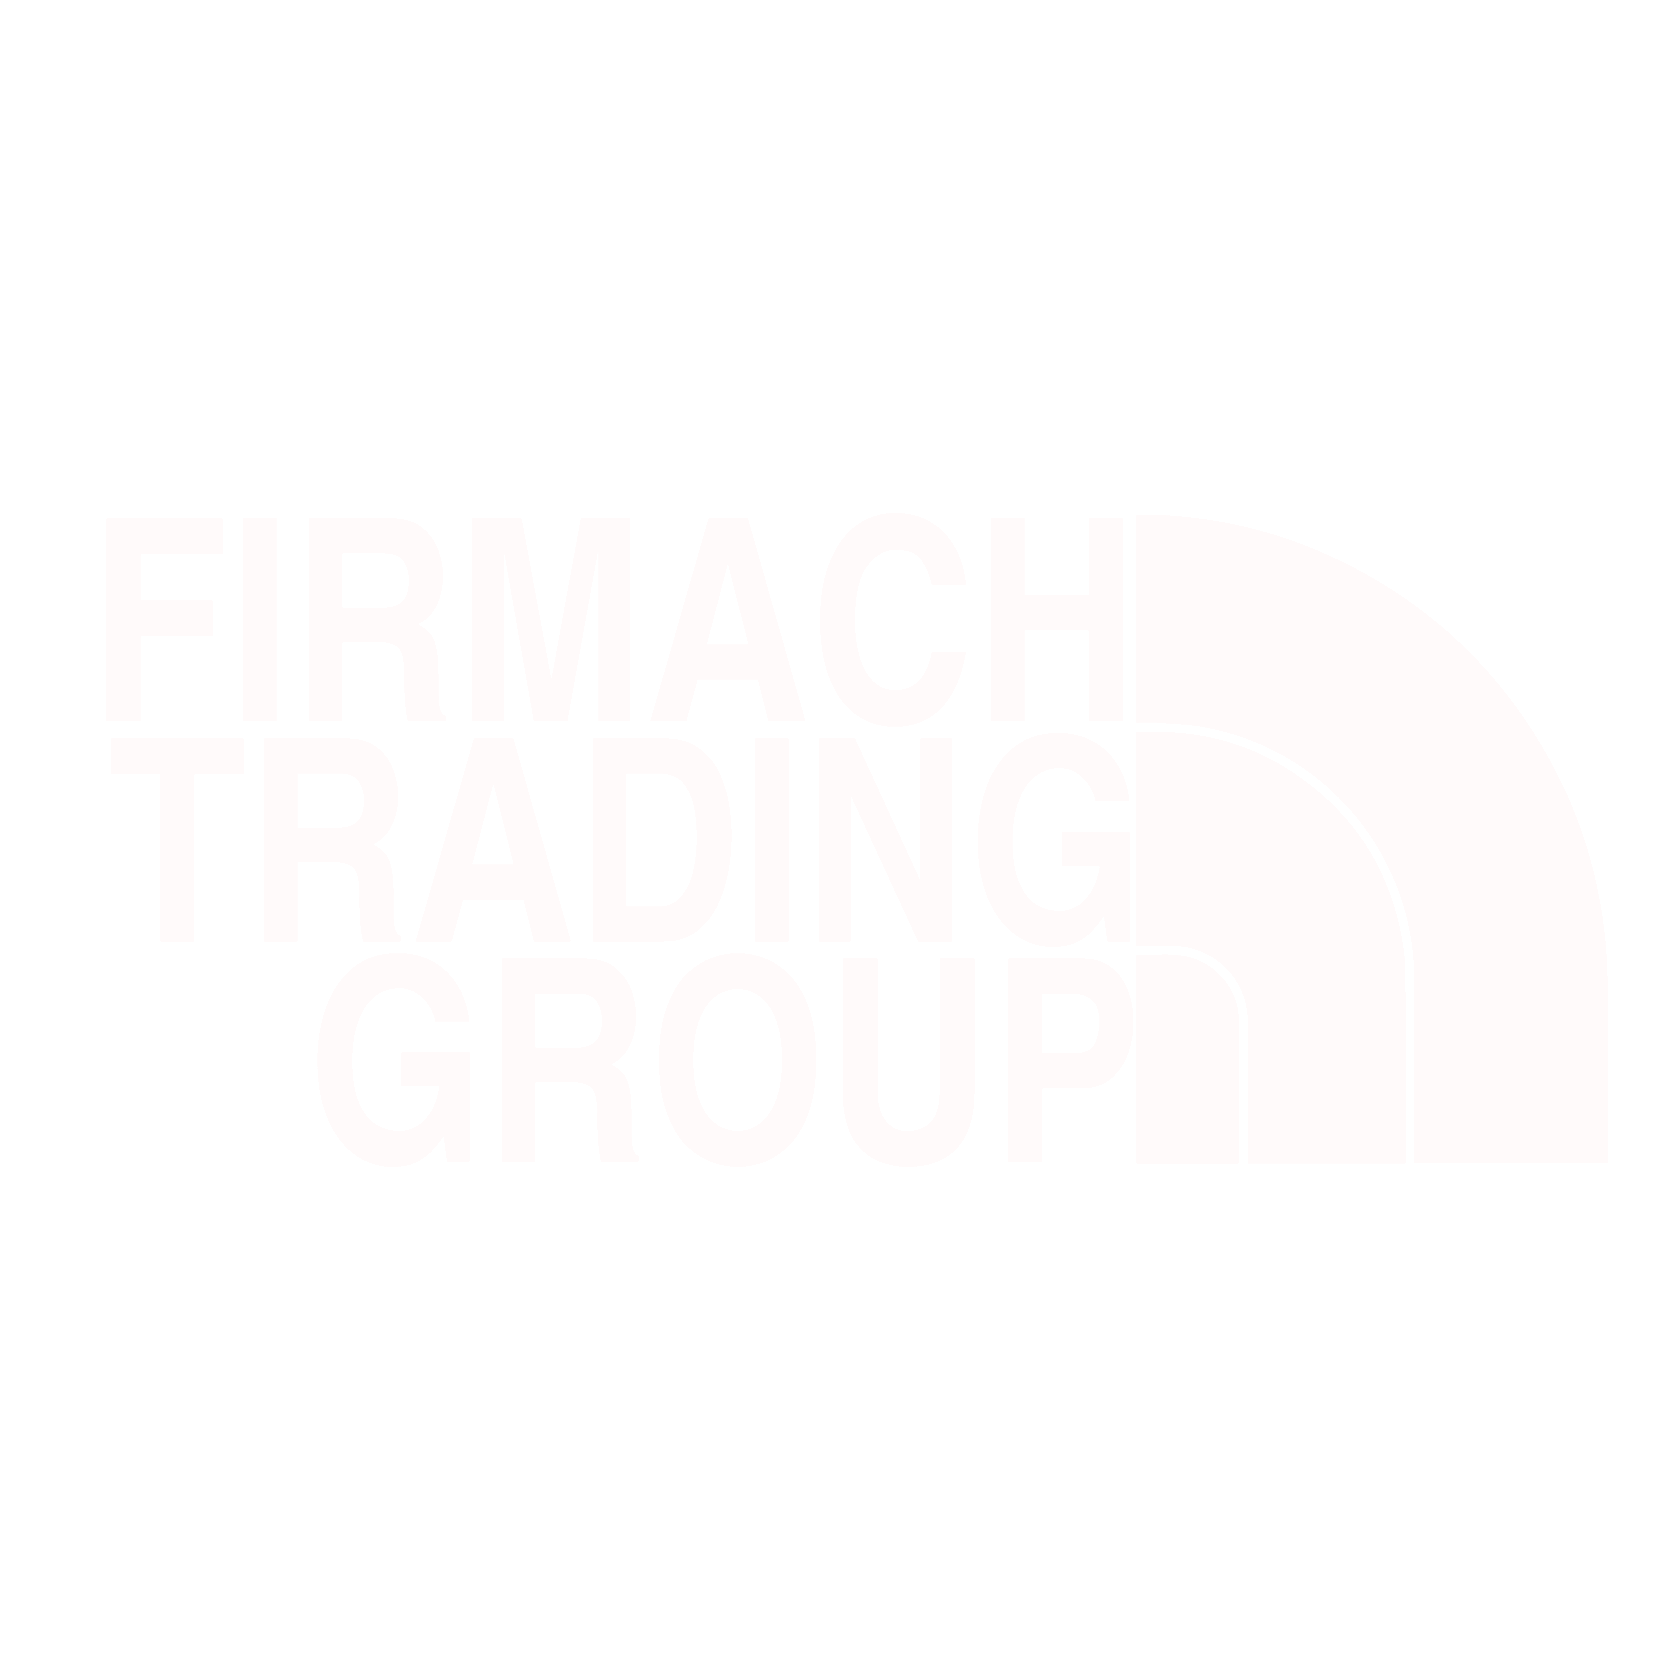 FIRMACHTRADING